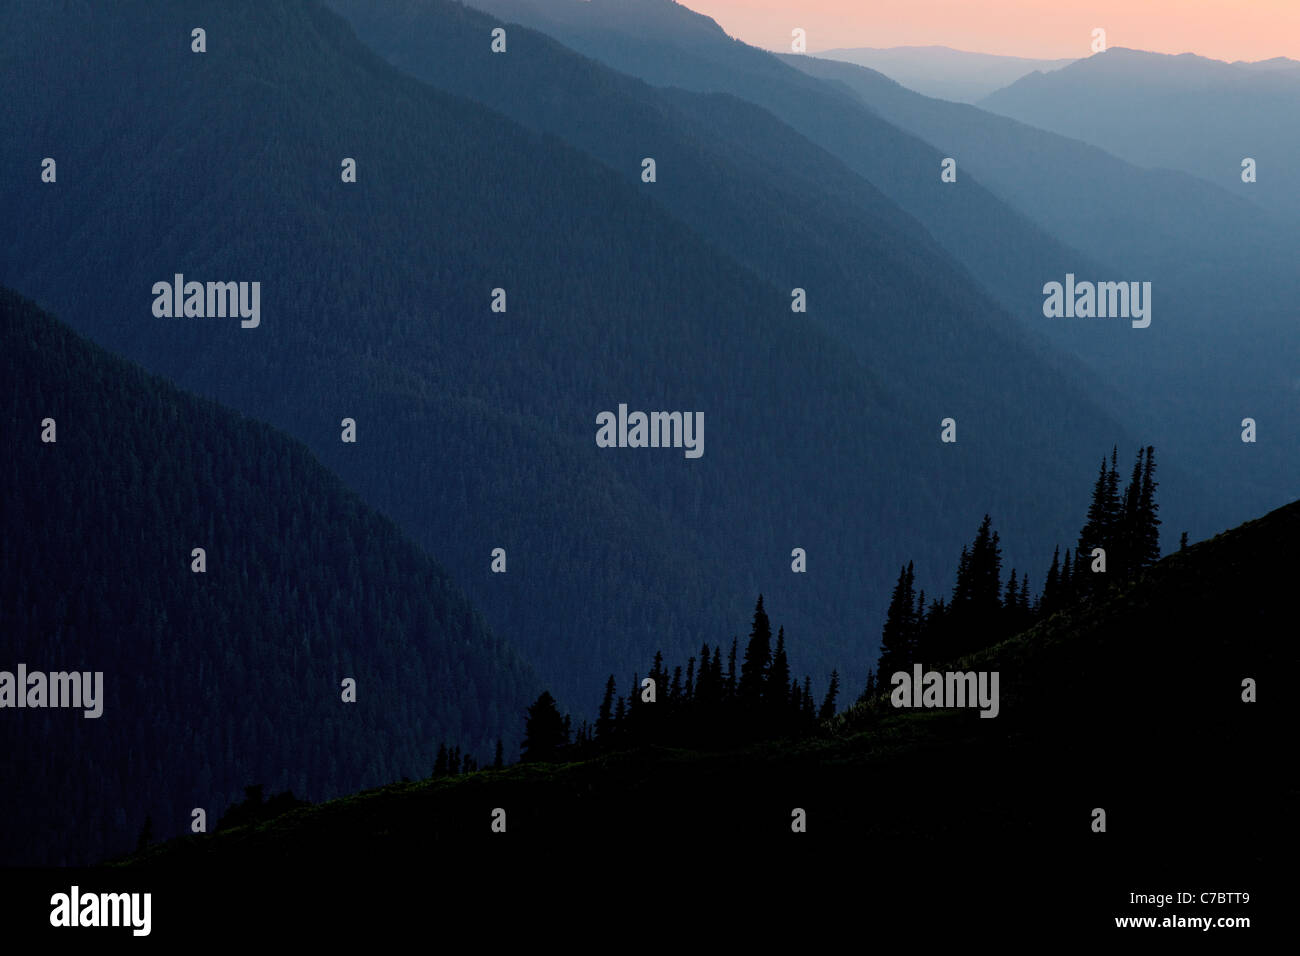 Stimmungsvolle Beleuchtung im Hoh River Valley, Olympic Nationalpark, Washington Stockbild